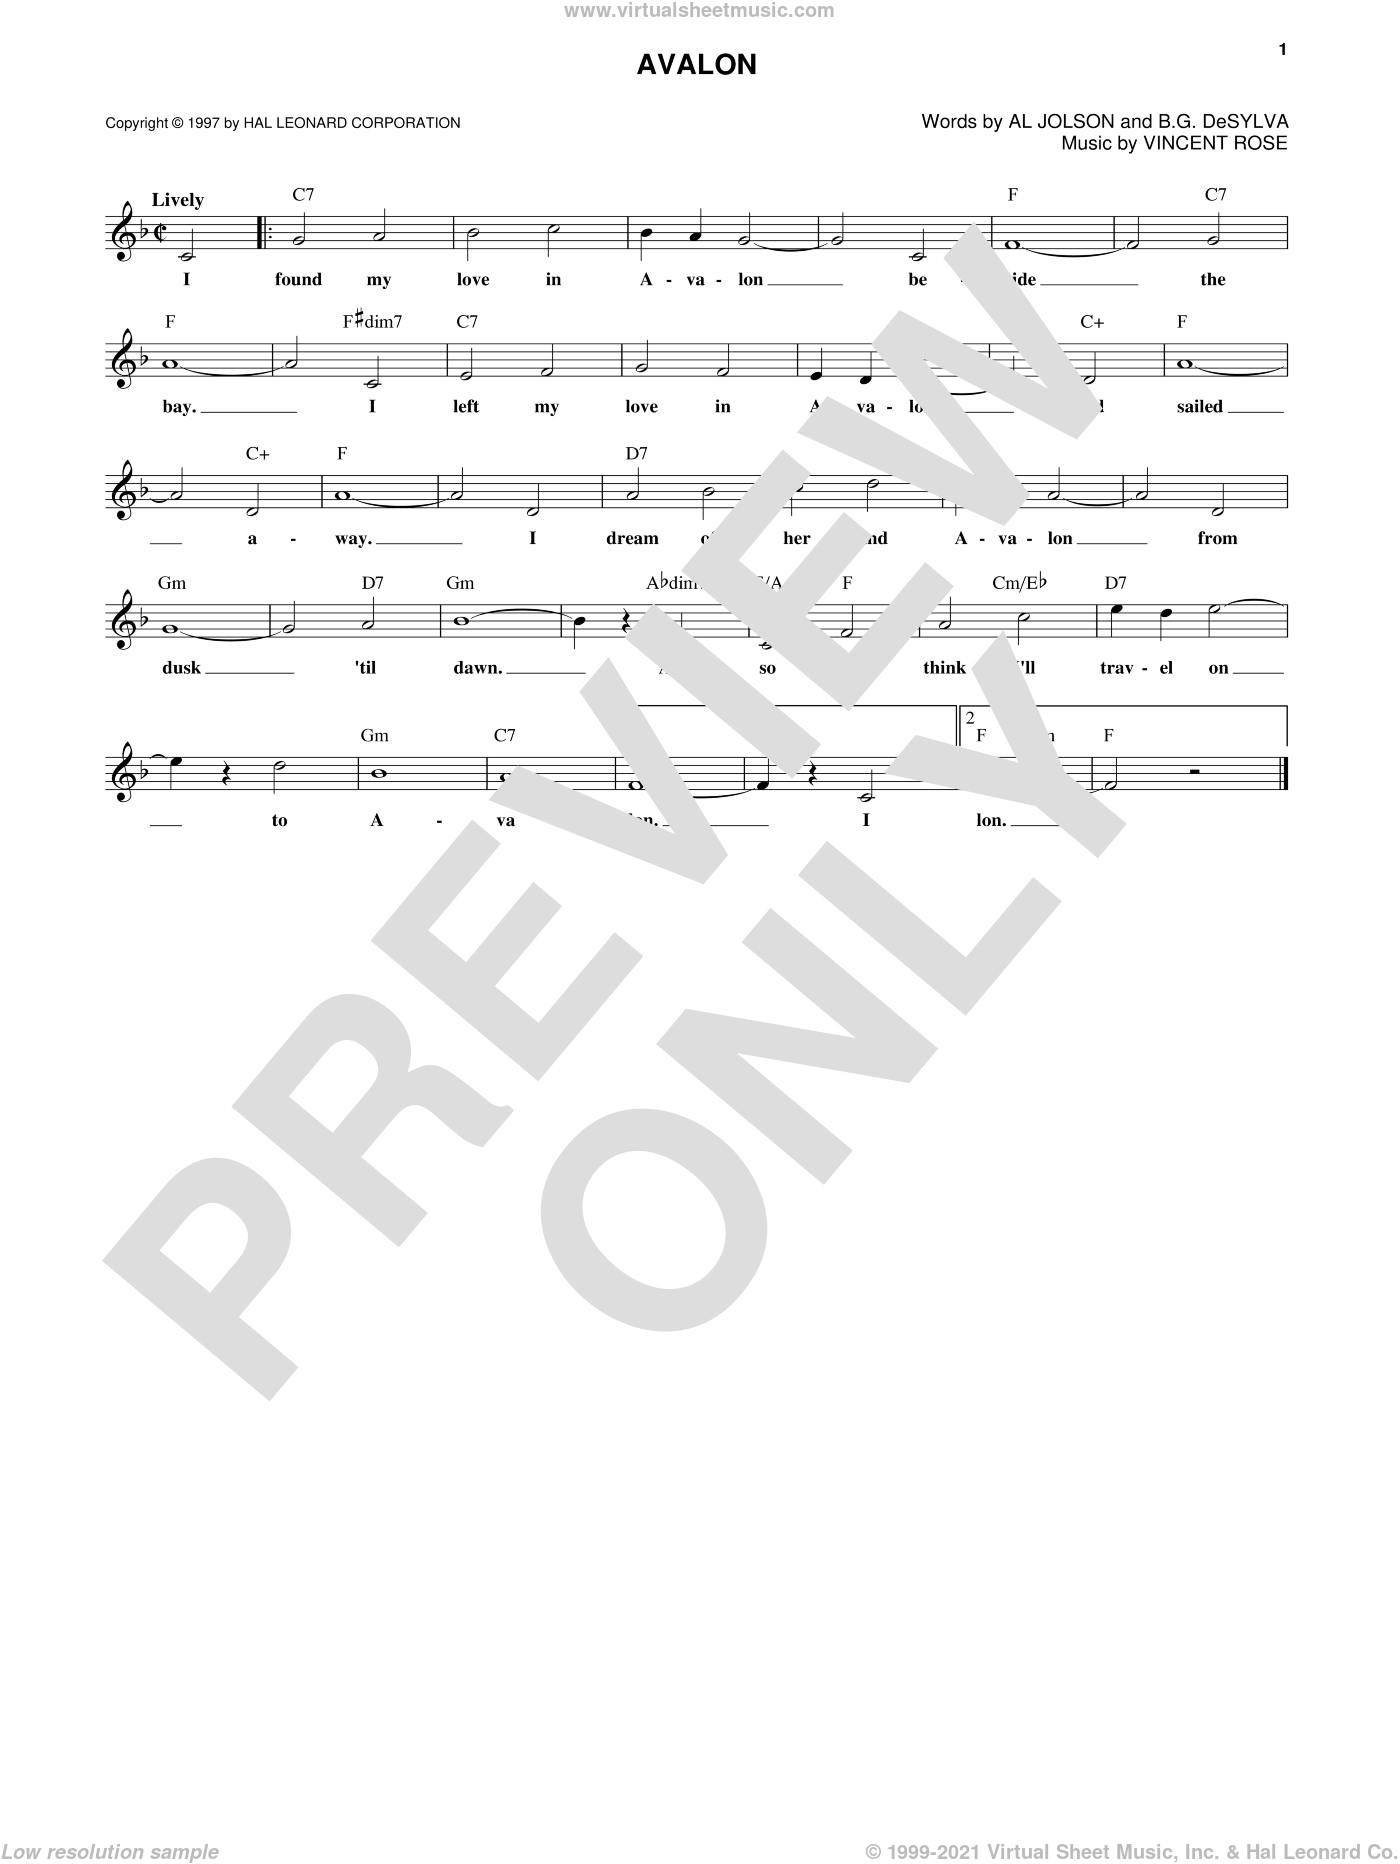 Avalon sheet music for voice and other instruments (fake book) by Vincent Rose, Al Jolson and Buddy DeSylva. Score Image Preview.